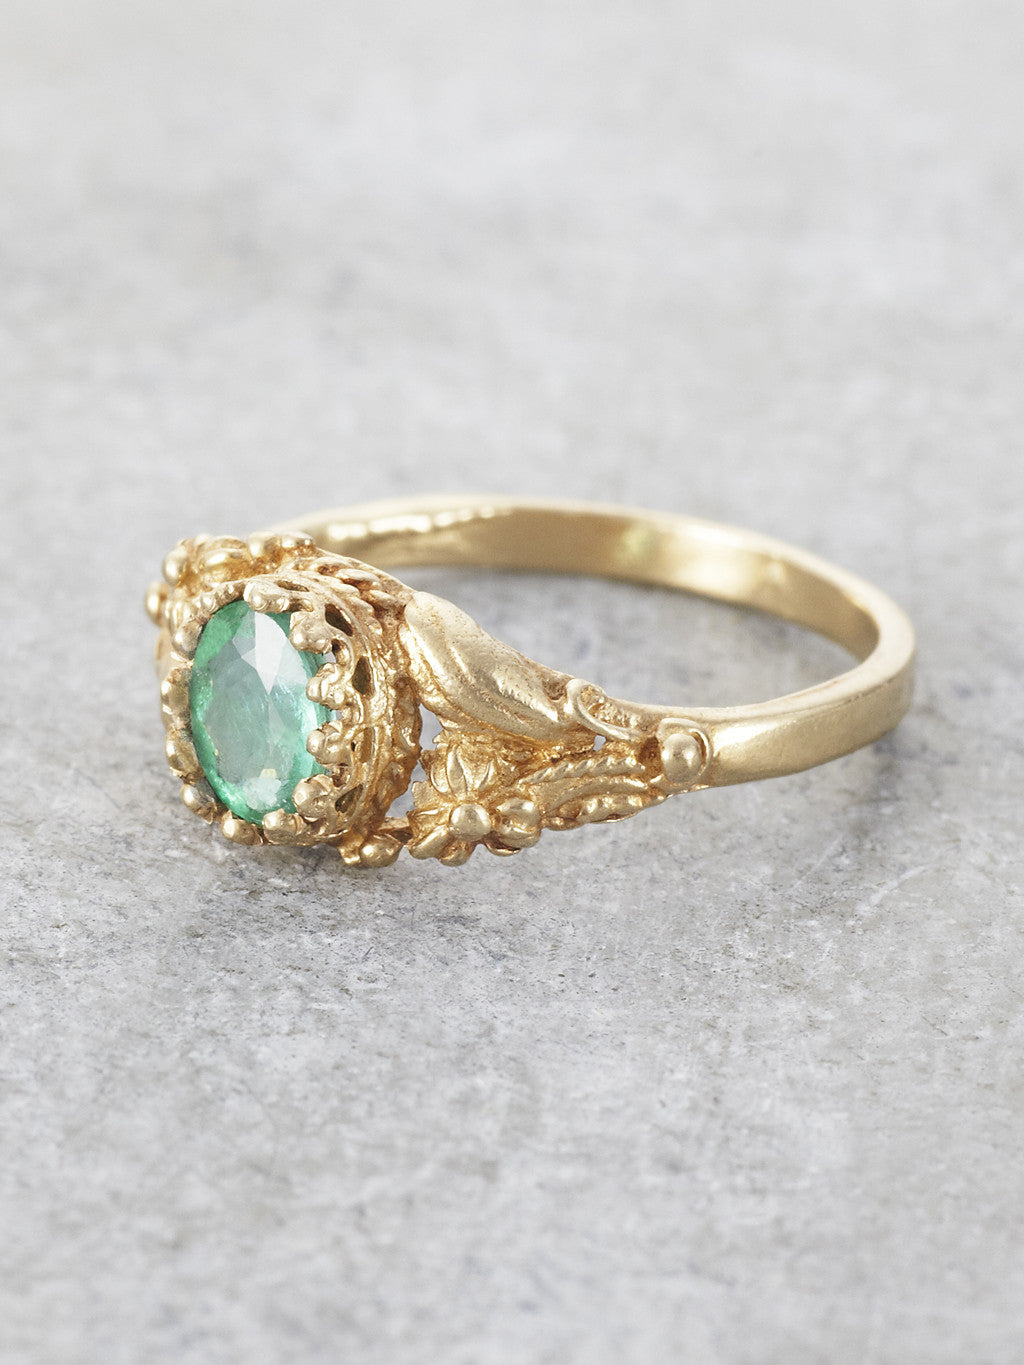 Emerald Garden of Earthly Delights Ring2